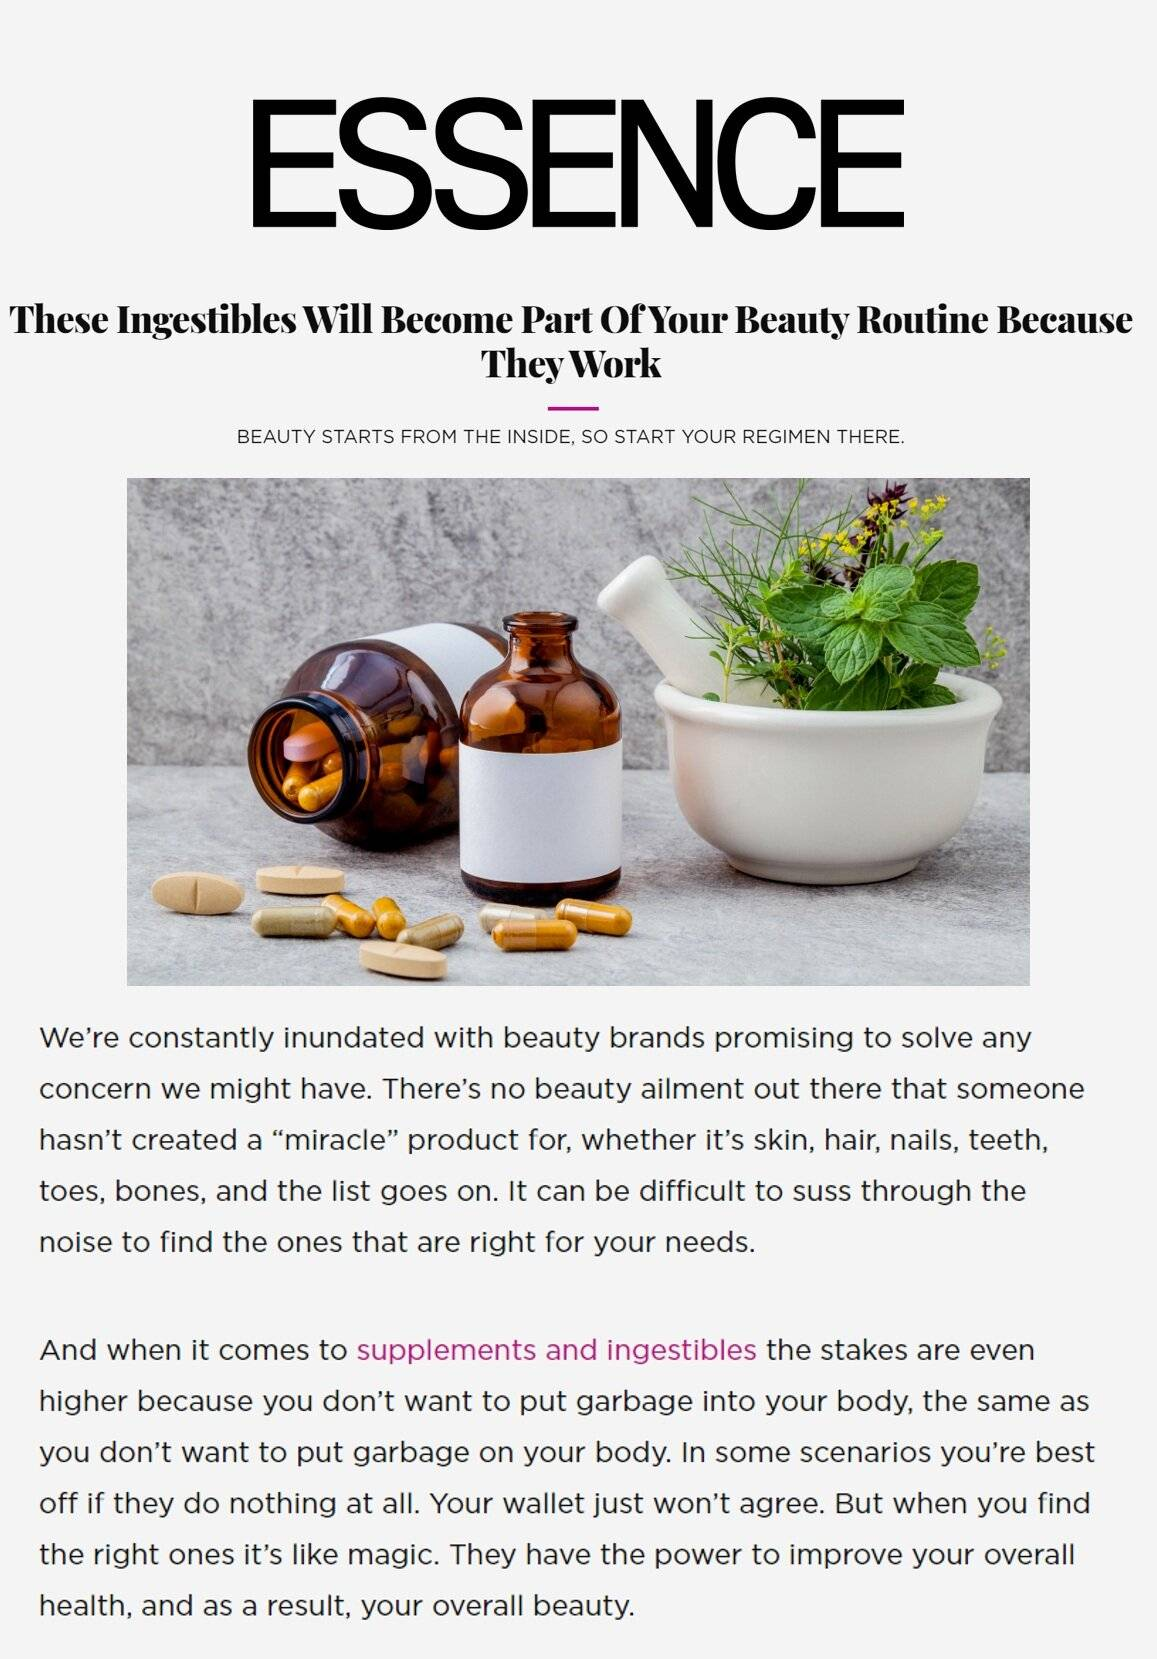 essence-magazine-beauty-vitamins-supplements-ingestible-beauty